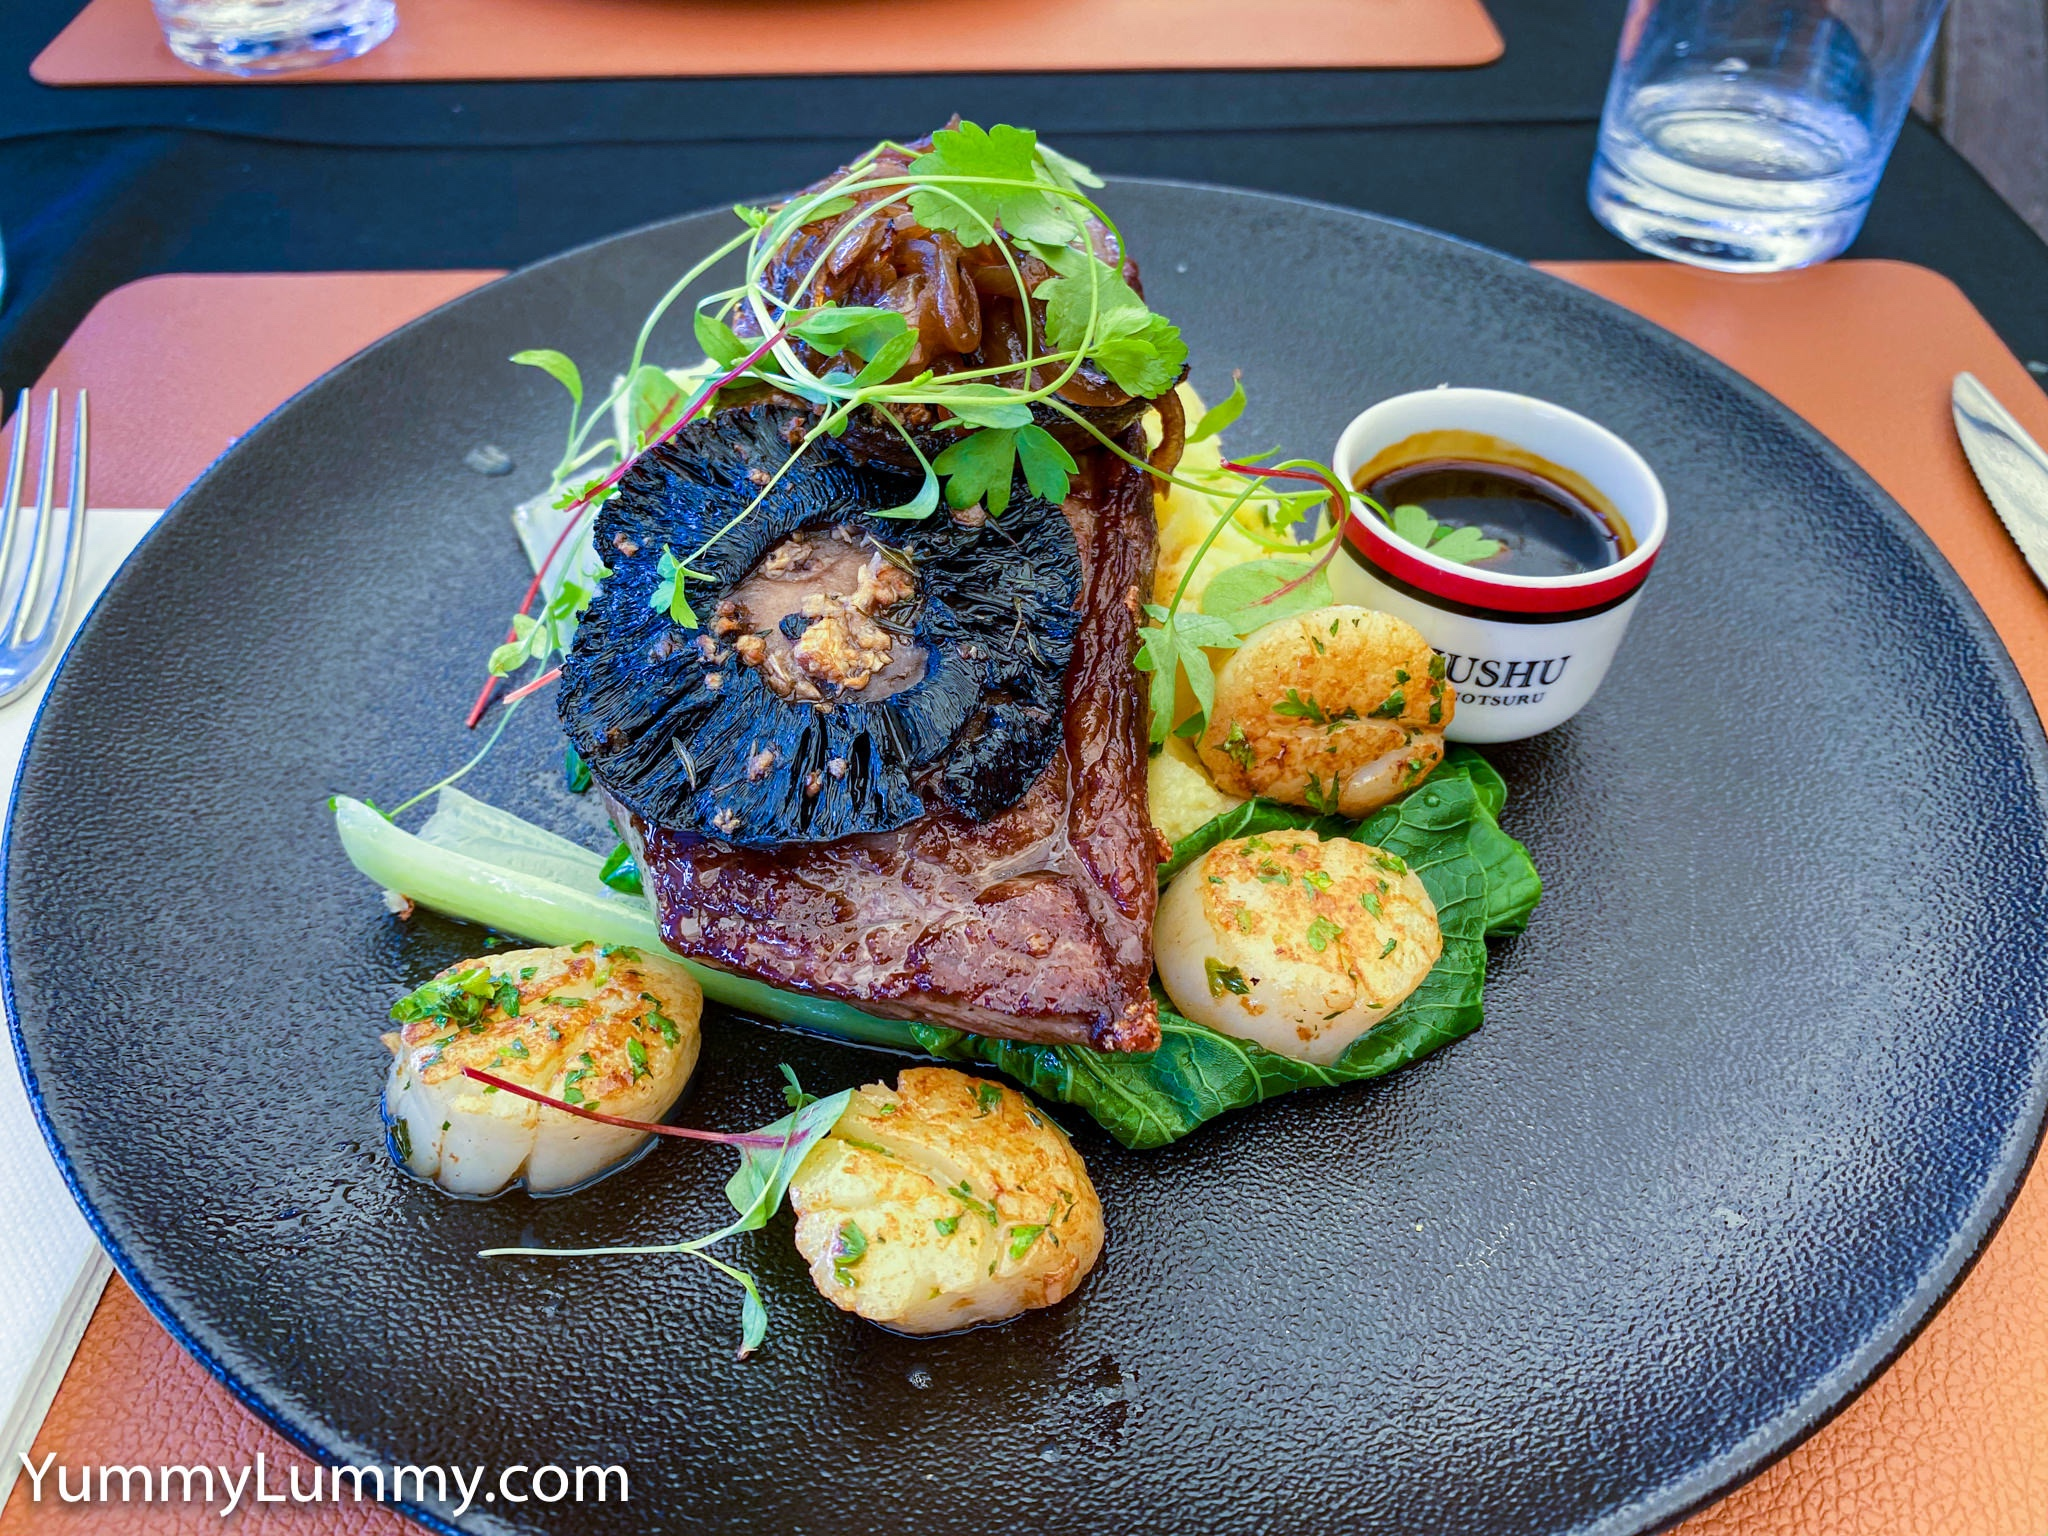 Medium rare Wagyu sirloin with sea scallops, mushroom, caramelised onions, potato mash, jus, and bok choi. Gary Lum.